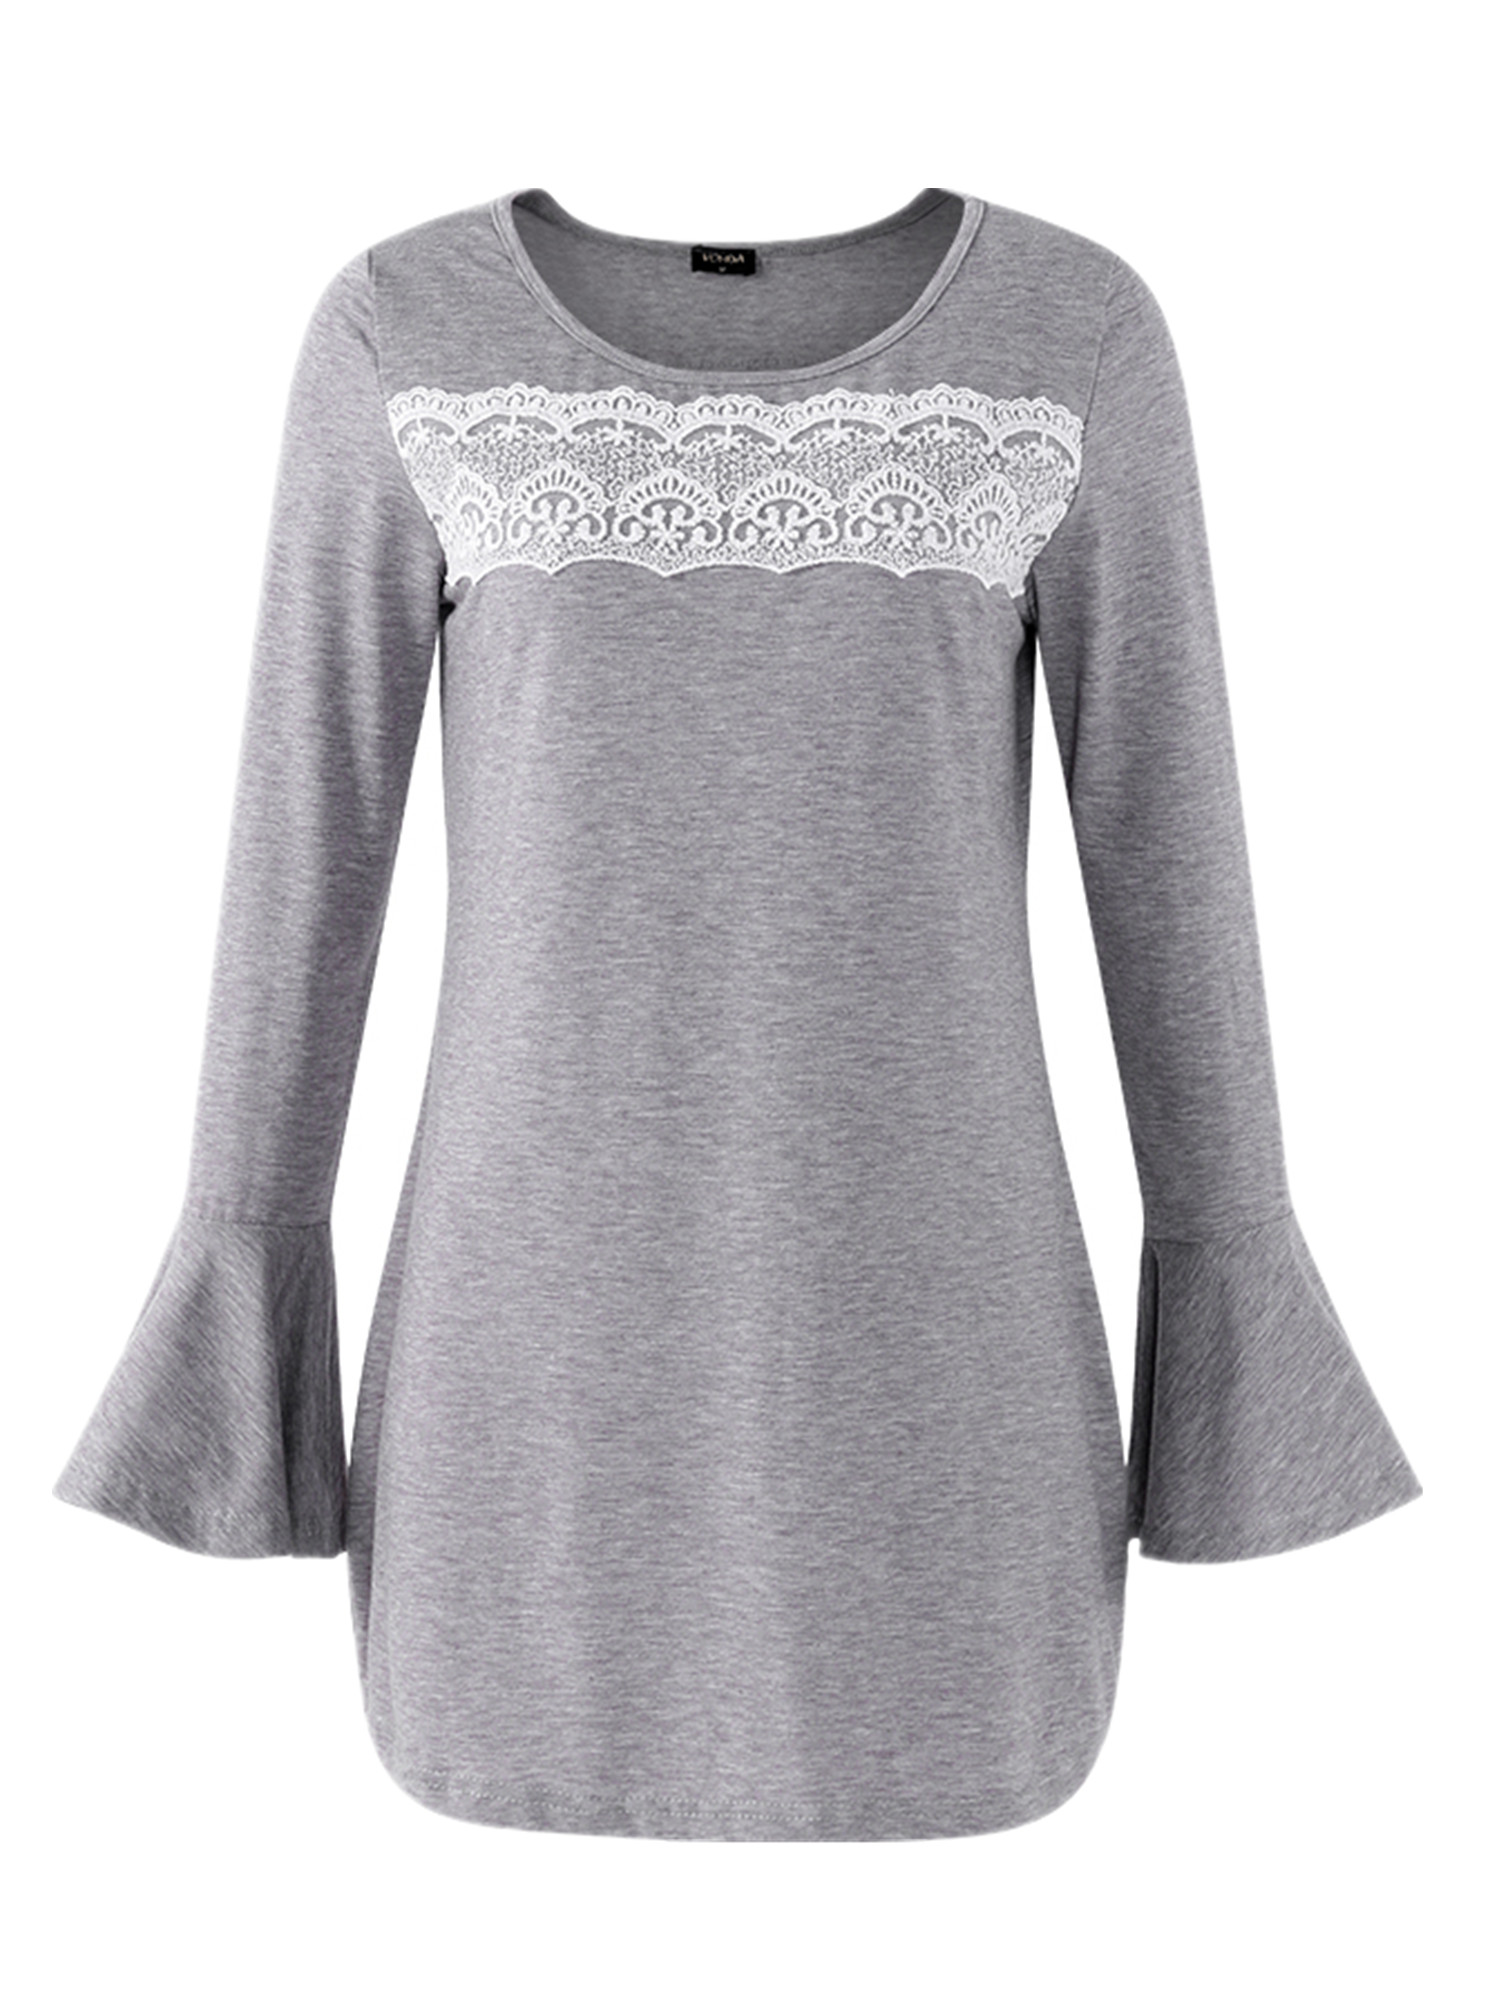 Lace Maternity Blouse Fashion Long Bell Sleeve Crew Neck Comfy Shirt